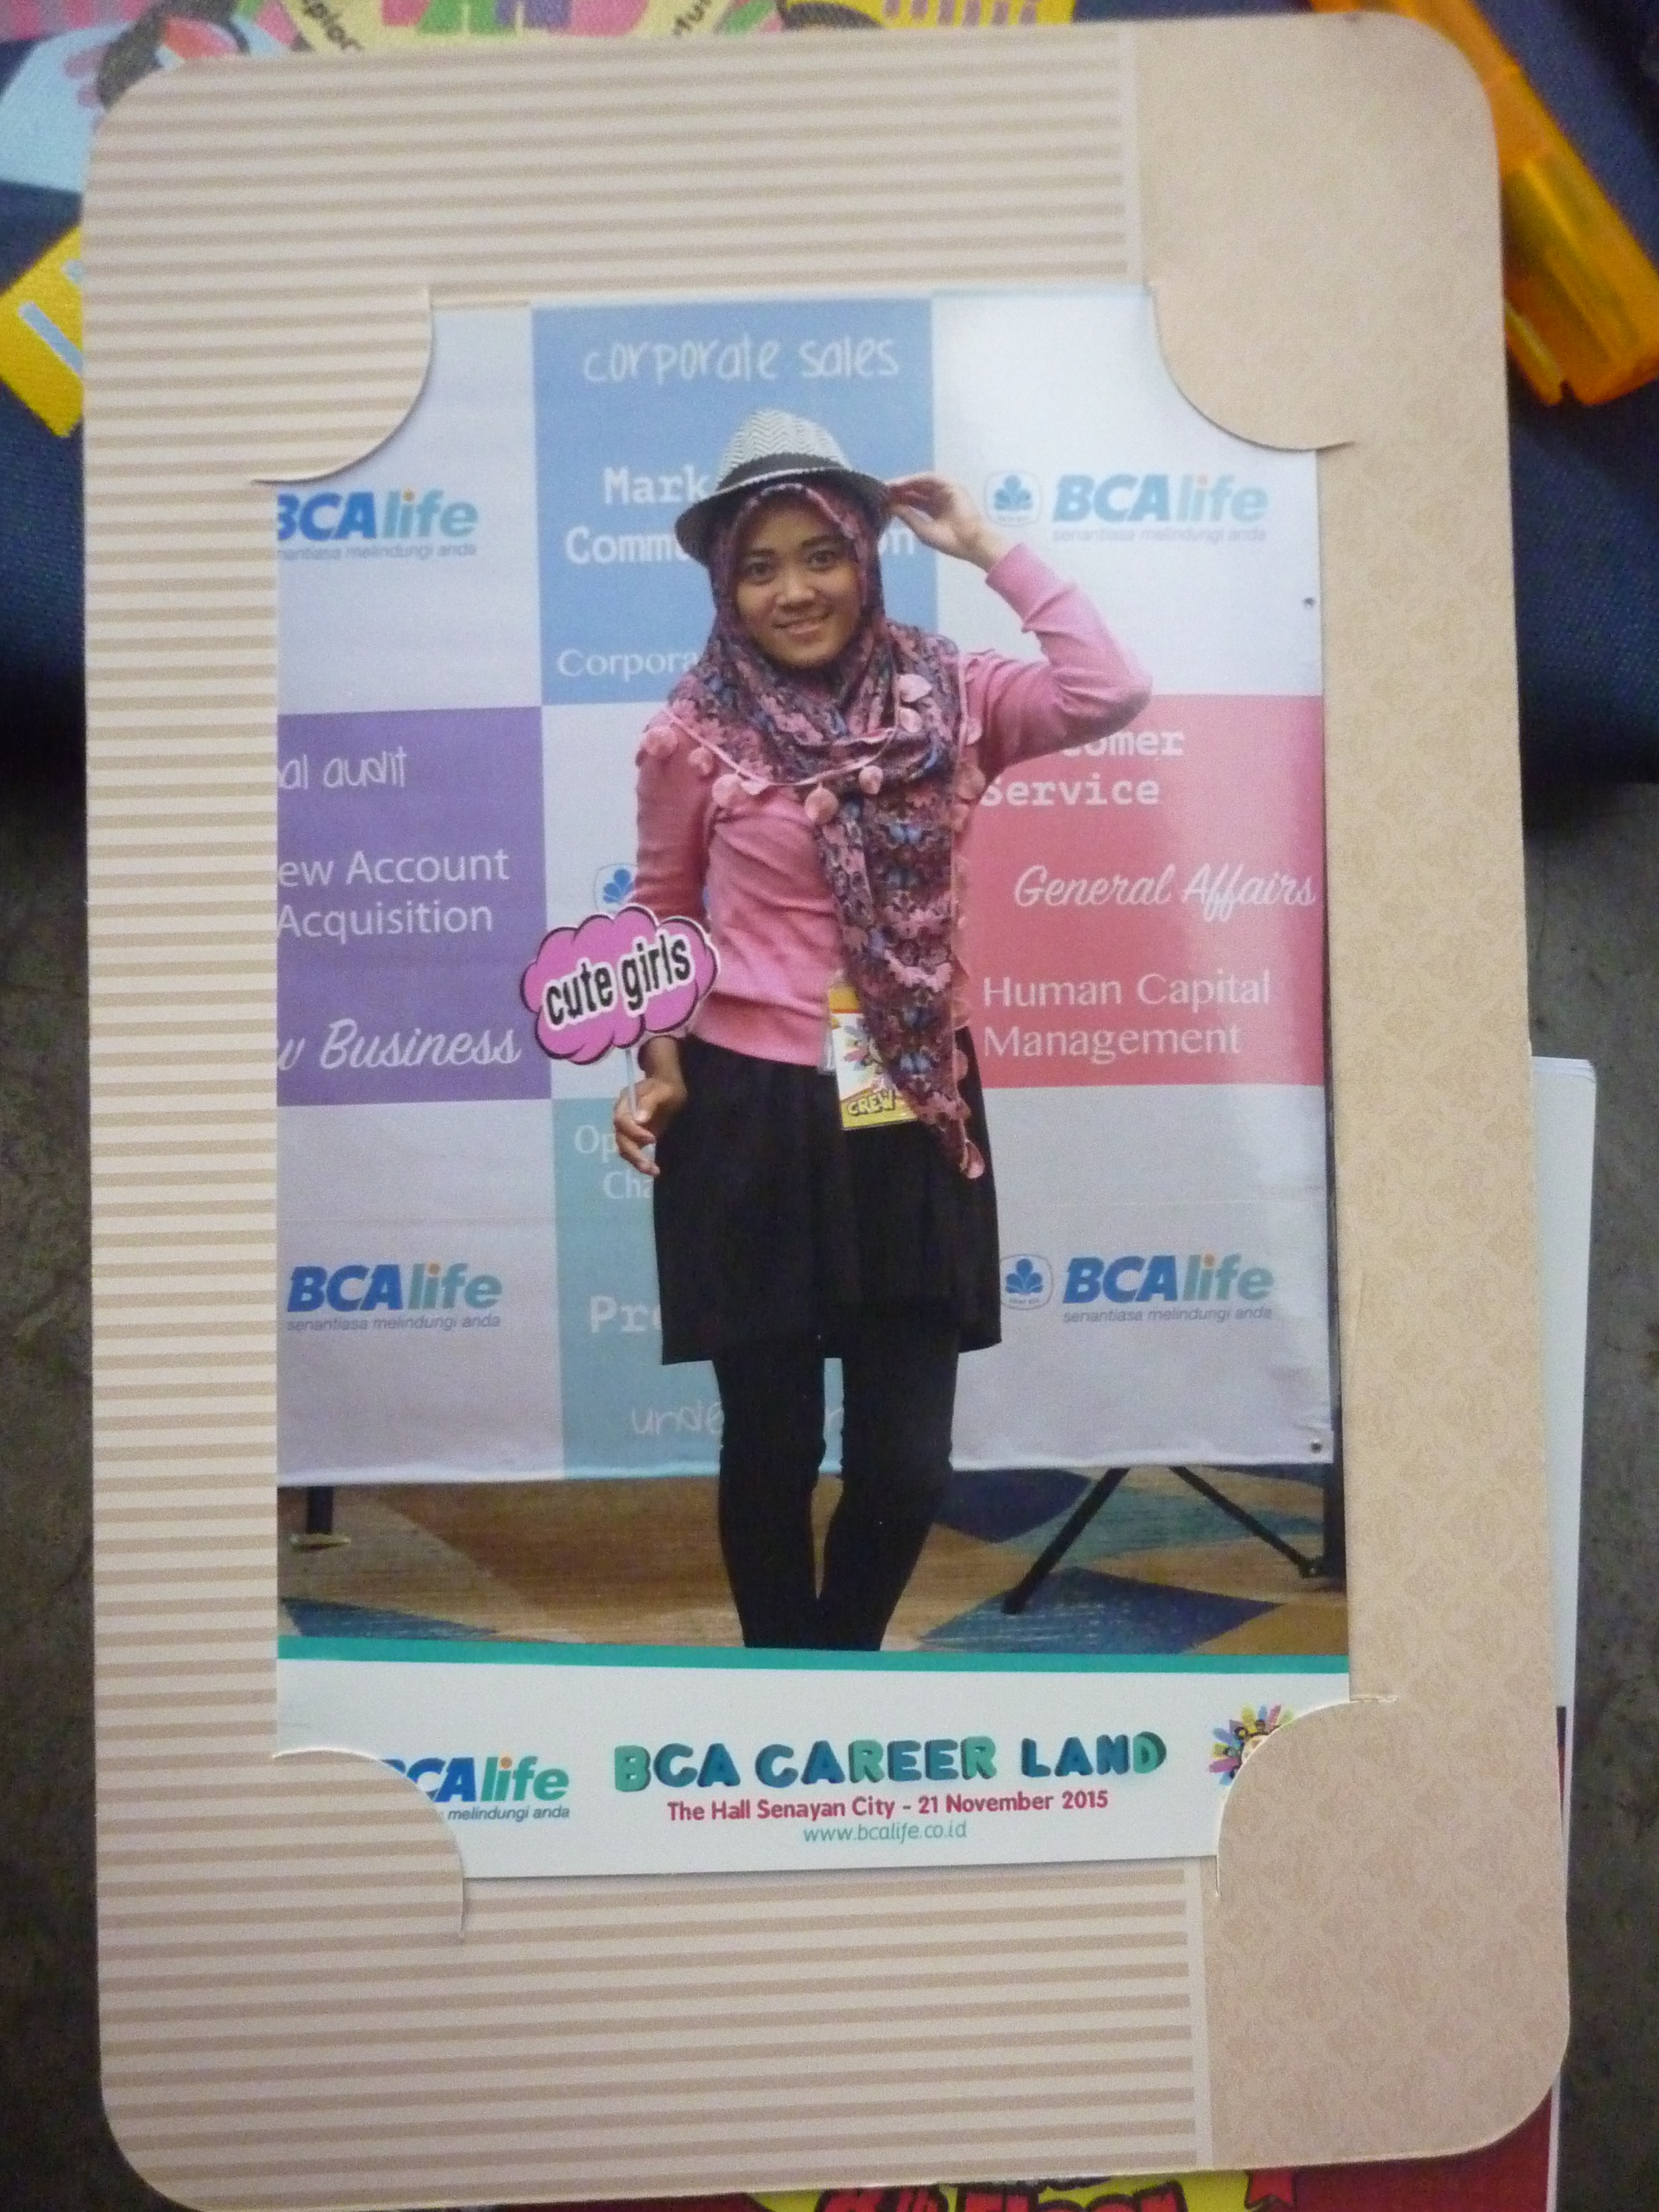 photo booth di BCA Life